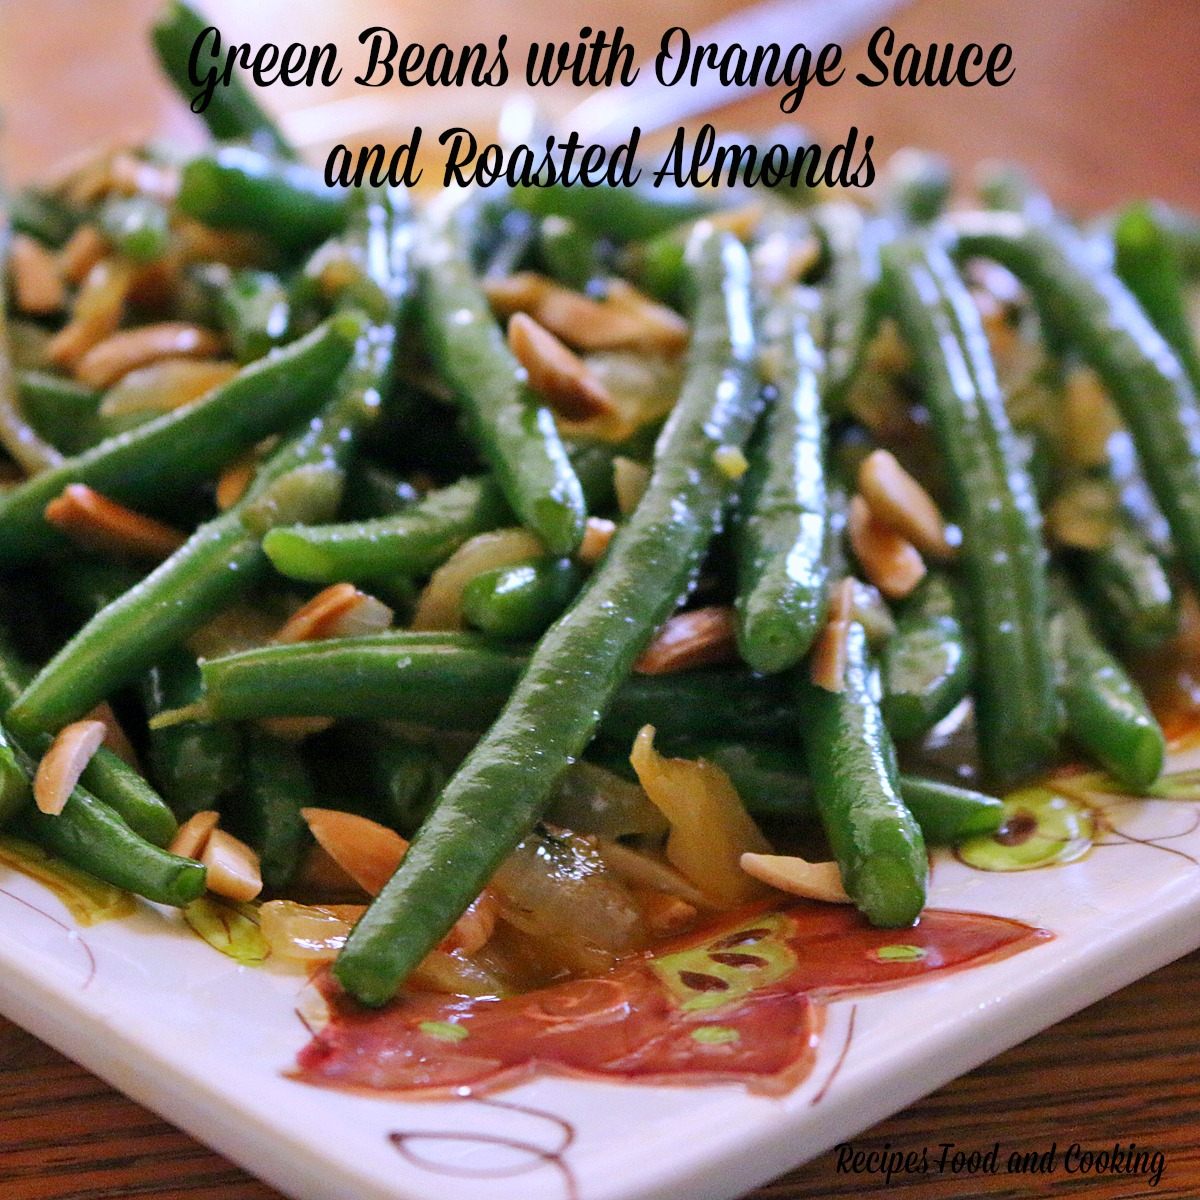 Green Beans with Orange Sauce and Roasted Almonds